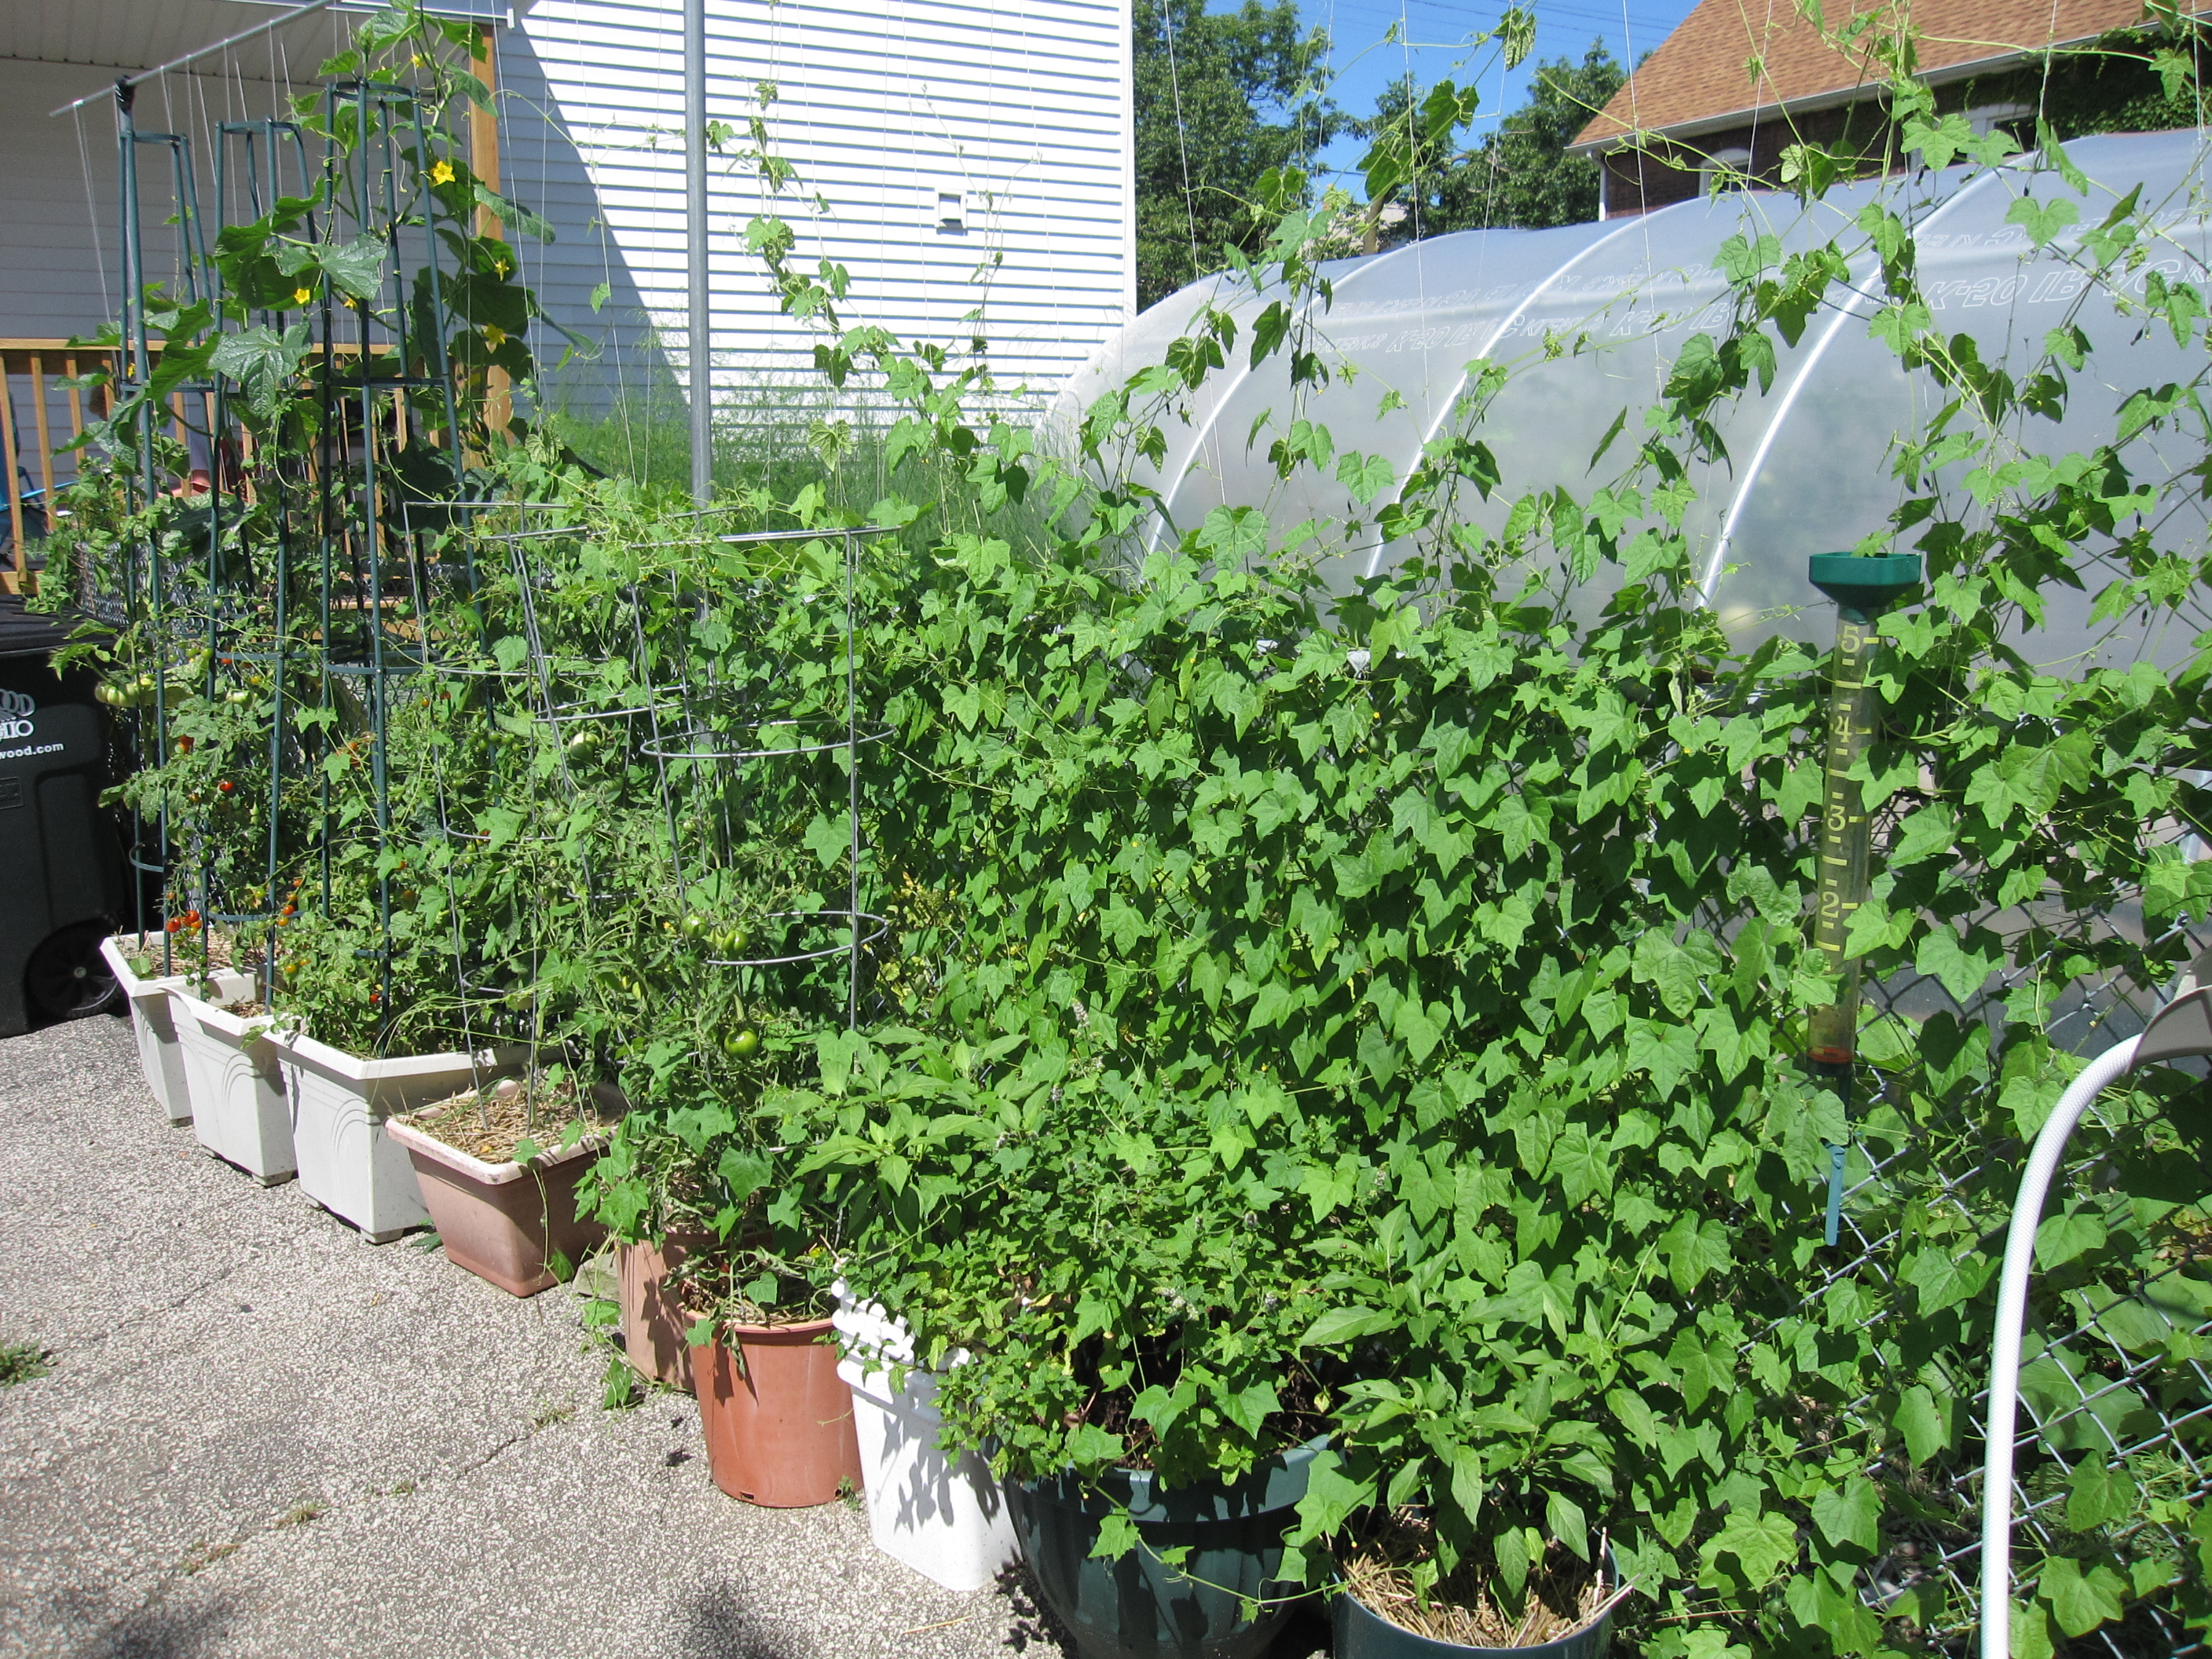 Tomatoes, cukes, Mexican sour gerkins on trellis